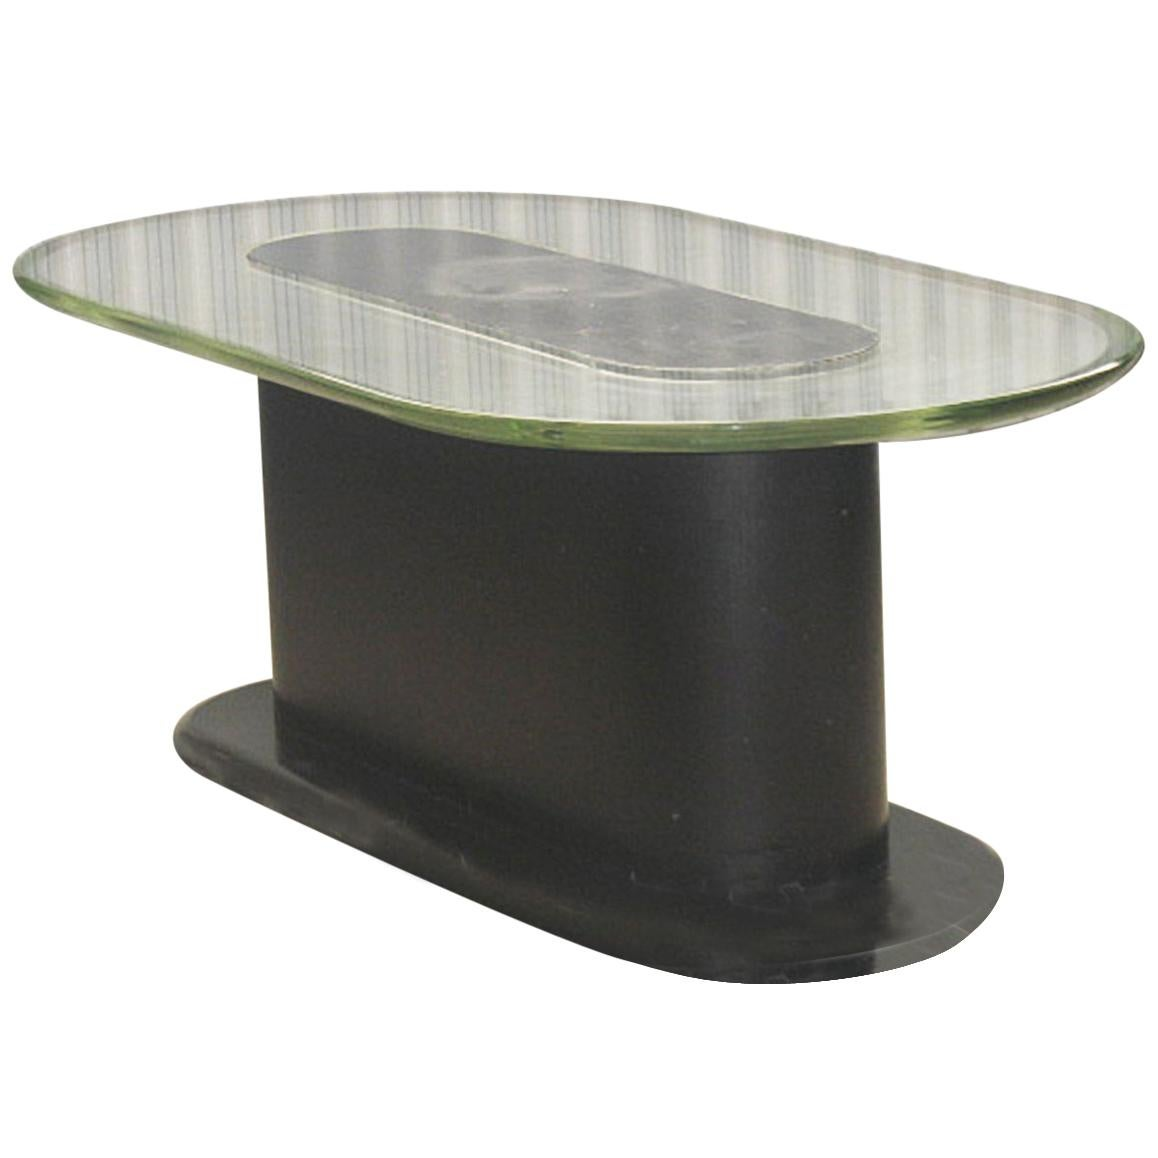 Pietro Chiesa Oval Low Table with Thik 'Verde Nilo' Glass Top, Milano, 1940s